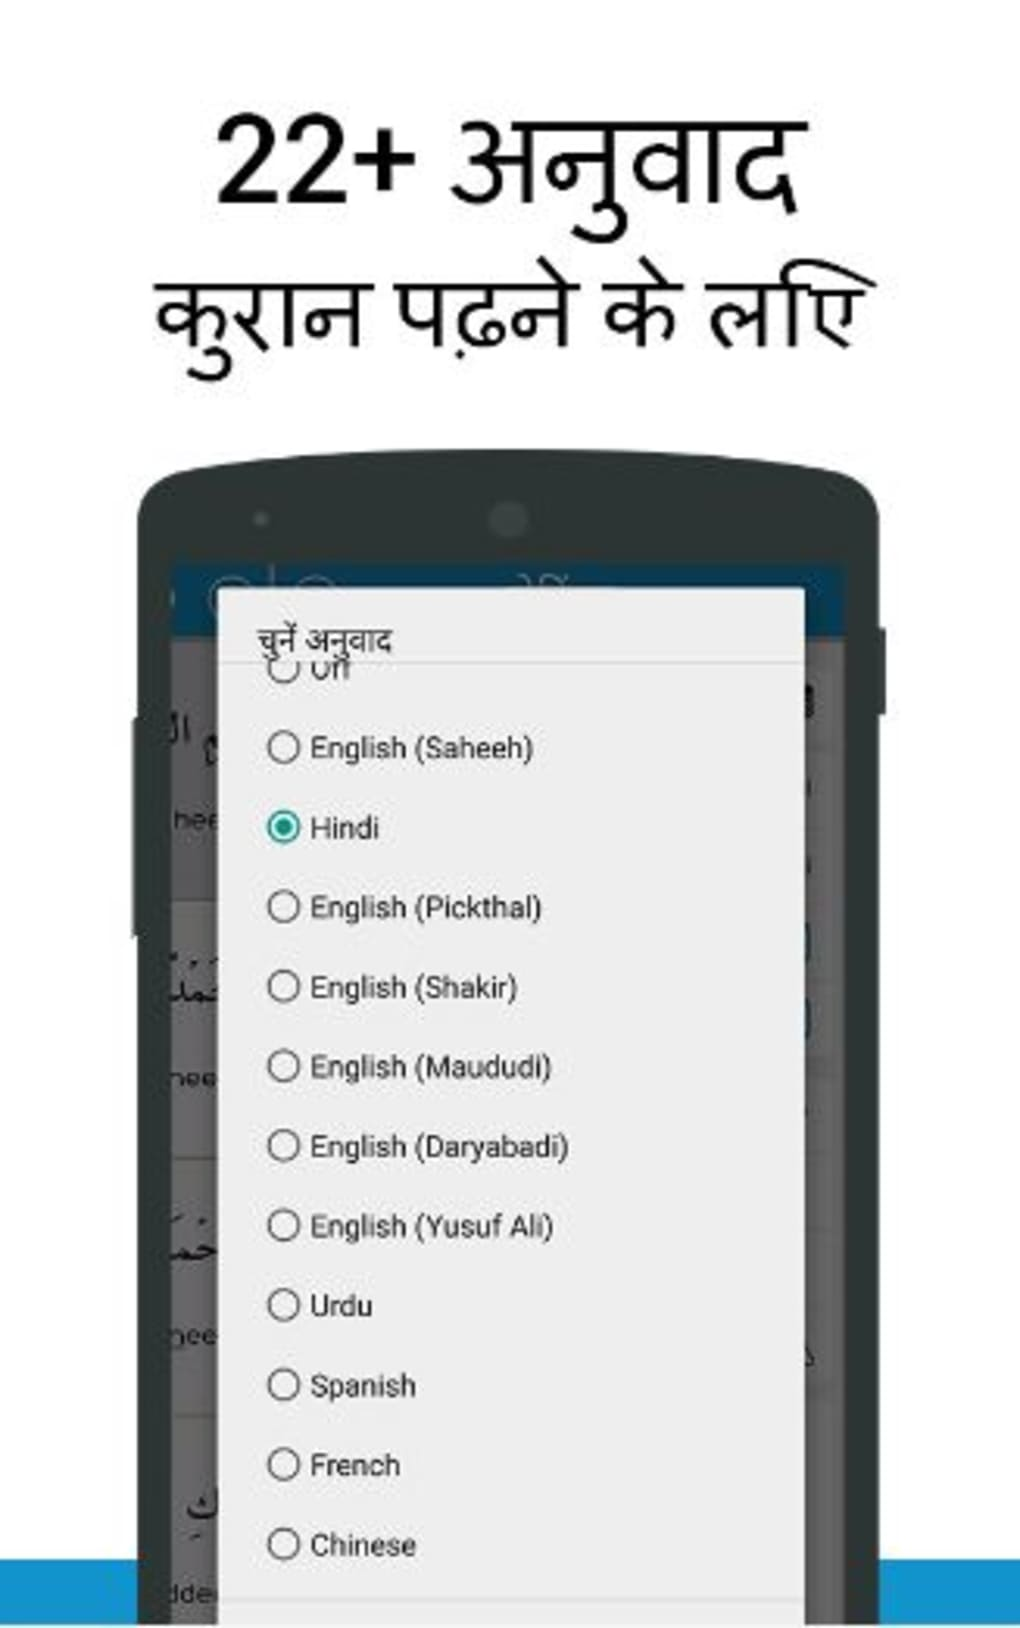 Quran in Hindi for Android - Download